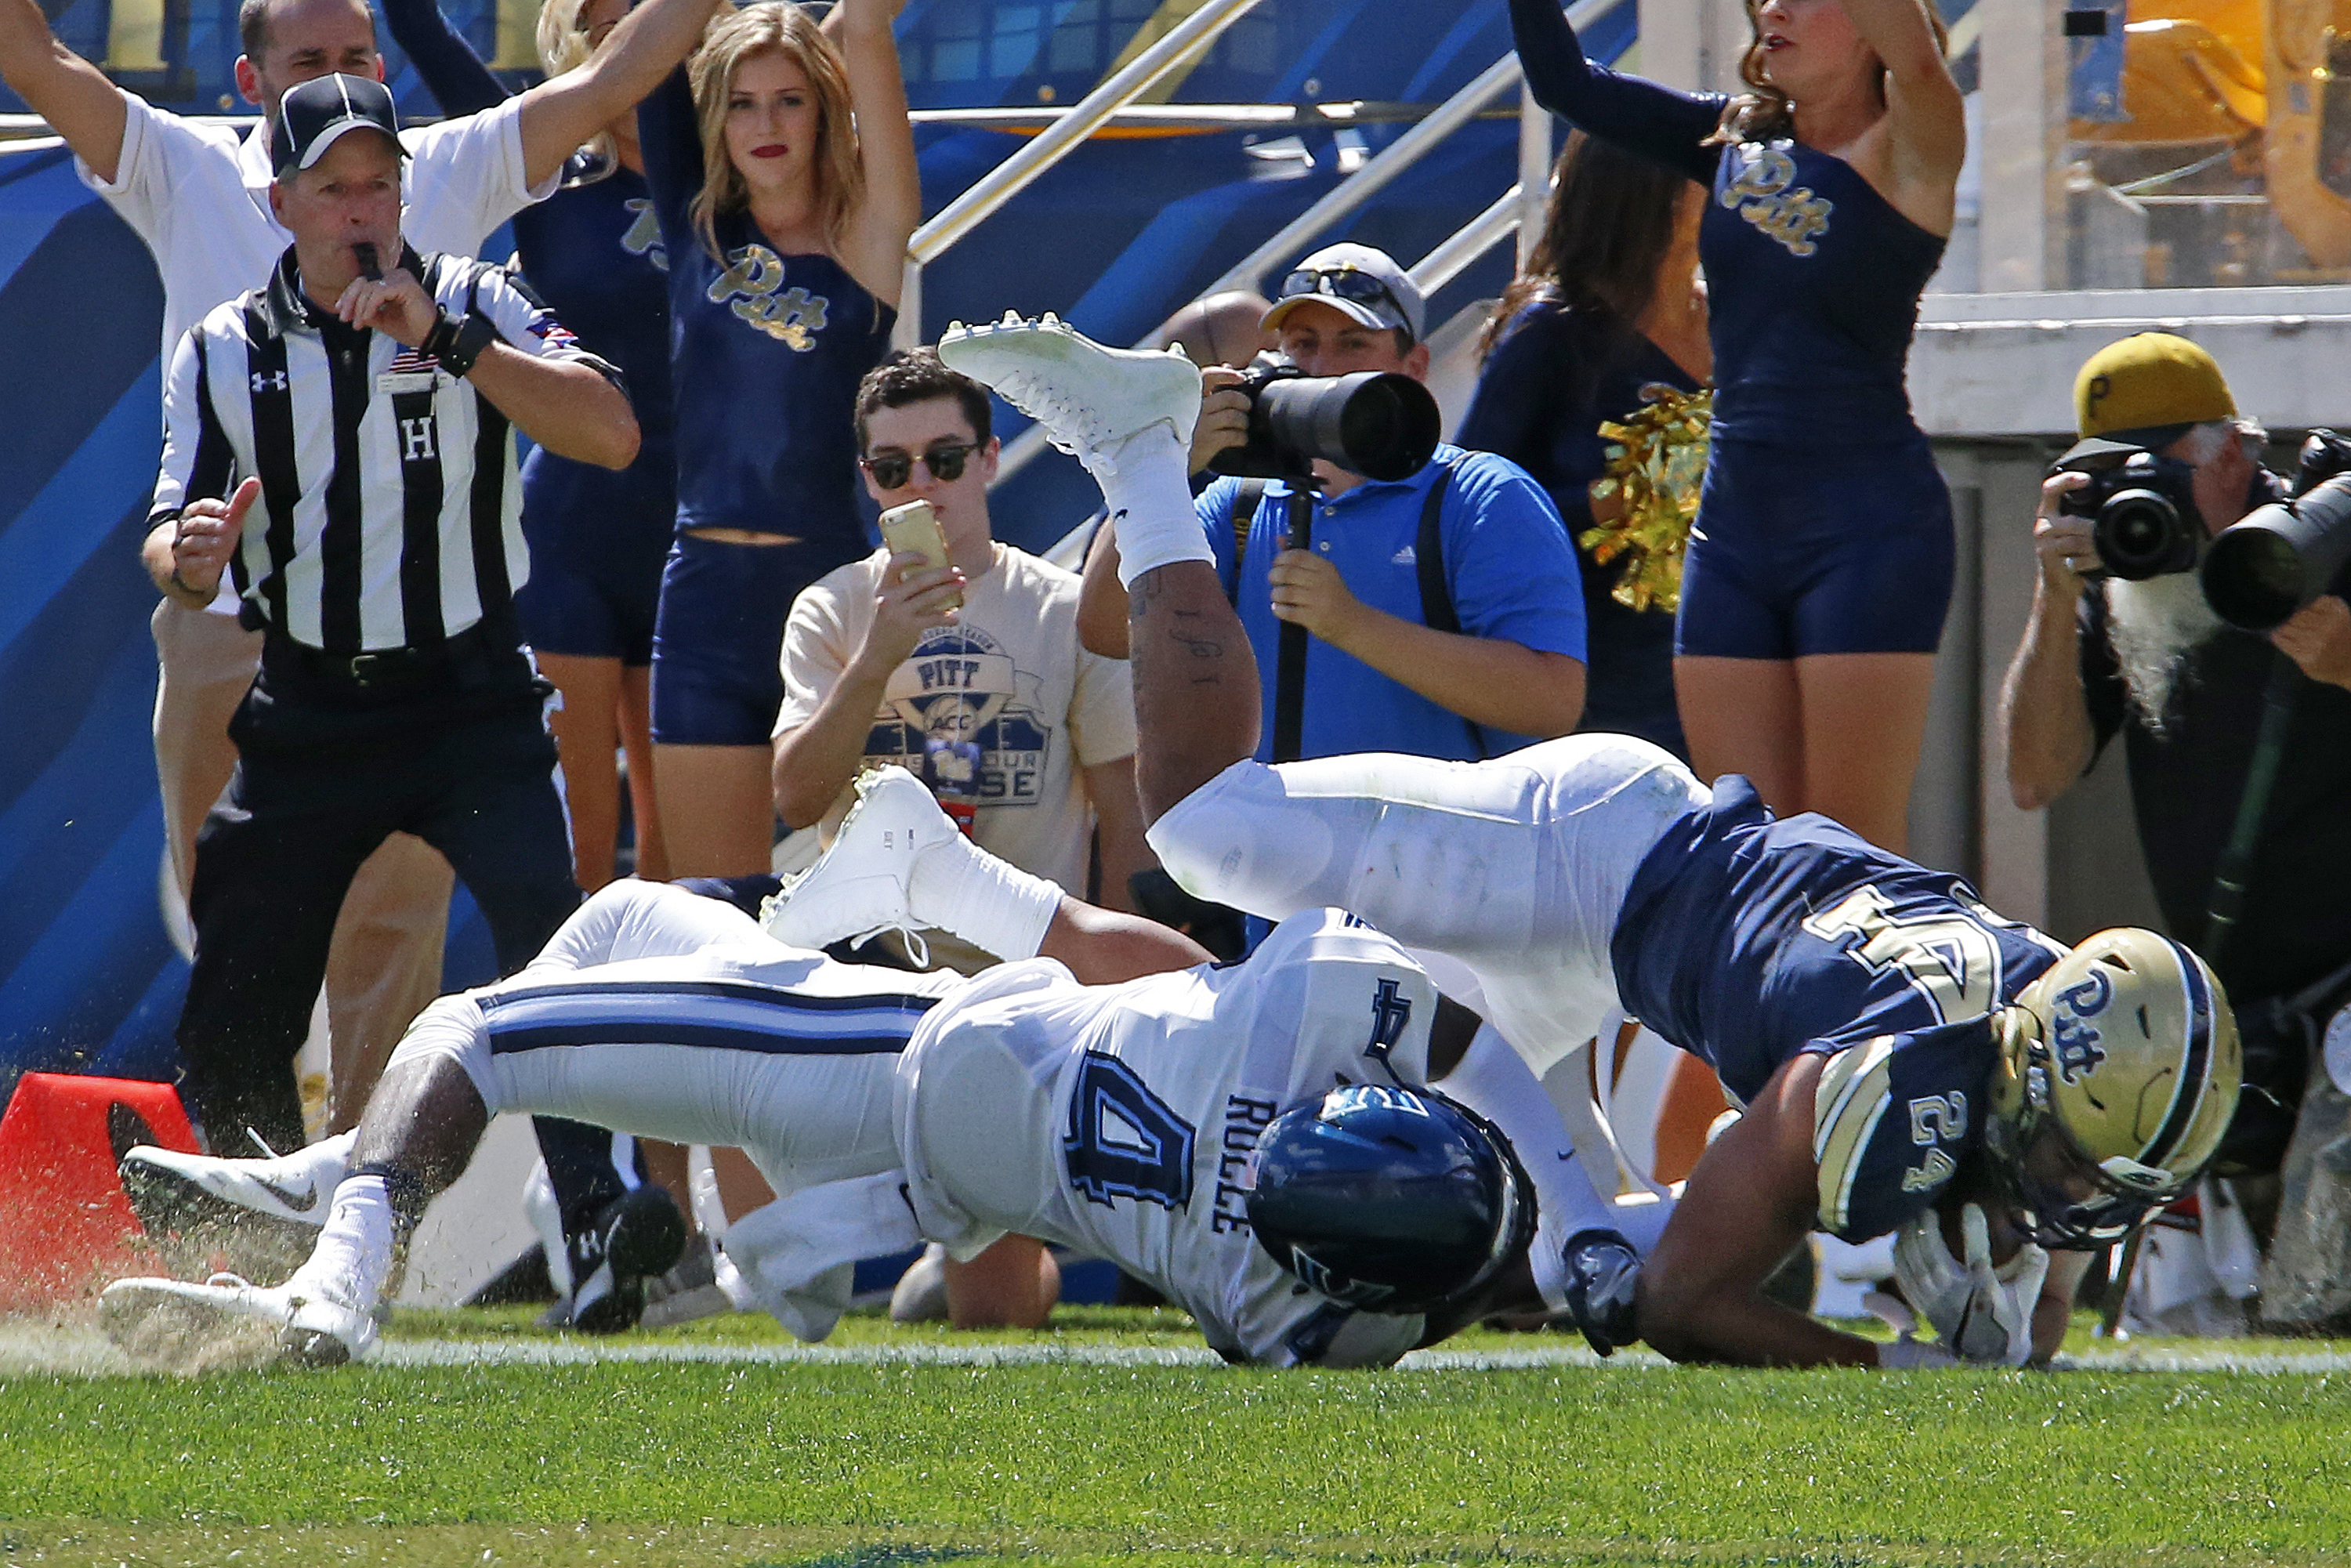 Pittsburgh running back James Conner (24) scores on a 3-yard run over Villanova's Rob Rolle (4) during the first half of an NCAA college football game in Pittsburgh, Saturday, Sept. 3, 2016. (AP Photo/Gene J. Puskar)